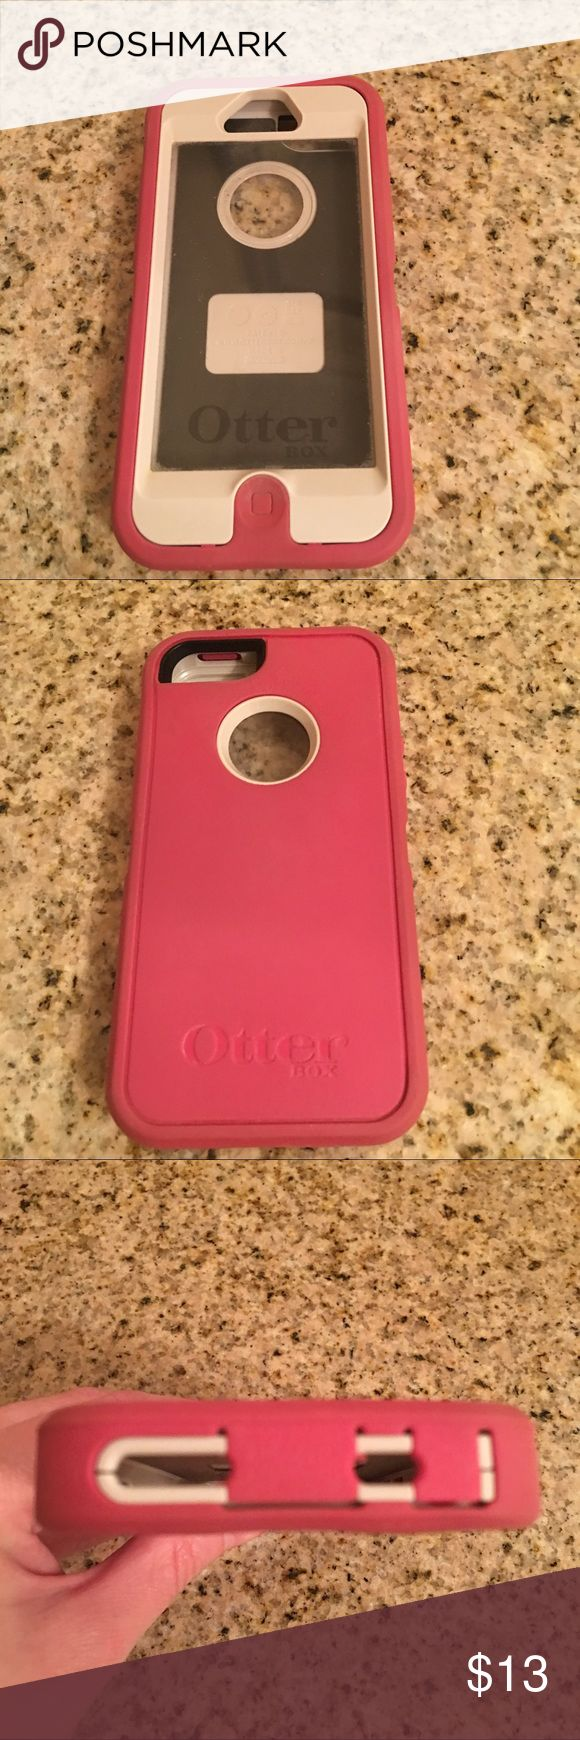 iPhone 5 Otterbox Case (Price Firm) This is an Otterbox defender series case for the iPhone 5 in pink. It is gently used and shows minor scuff marks on the plastic screen protector, but it does not affect the visibility of the phone screen.  (Price Firm) OtterBox Accessories Phone Cases